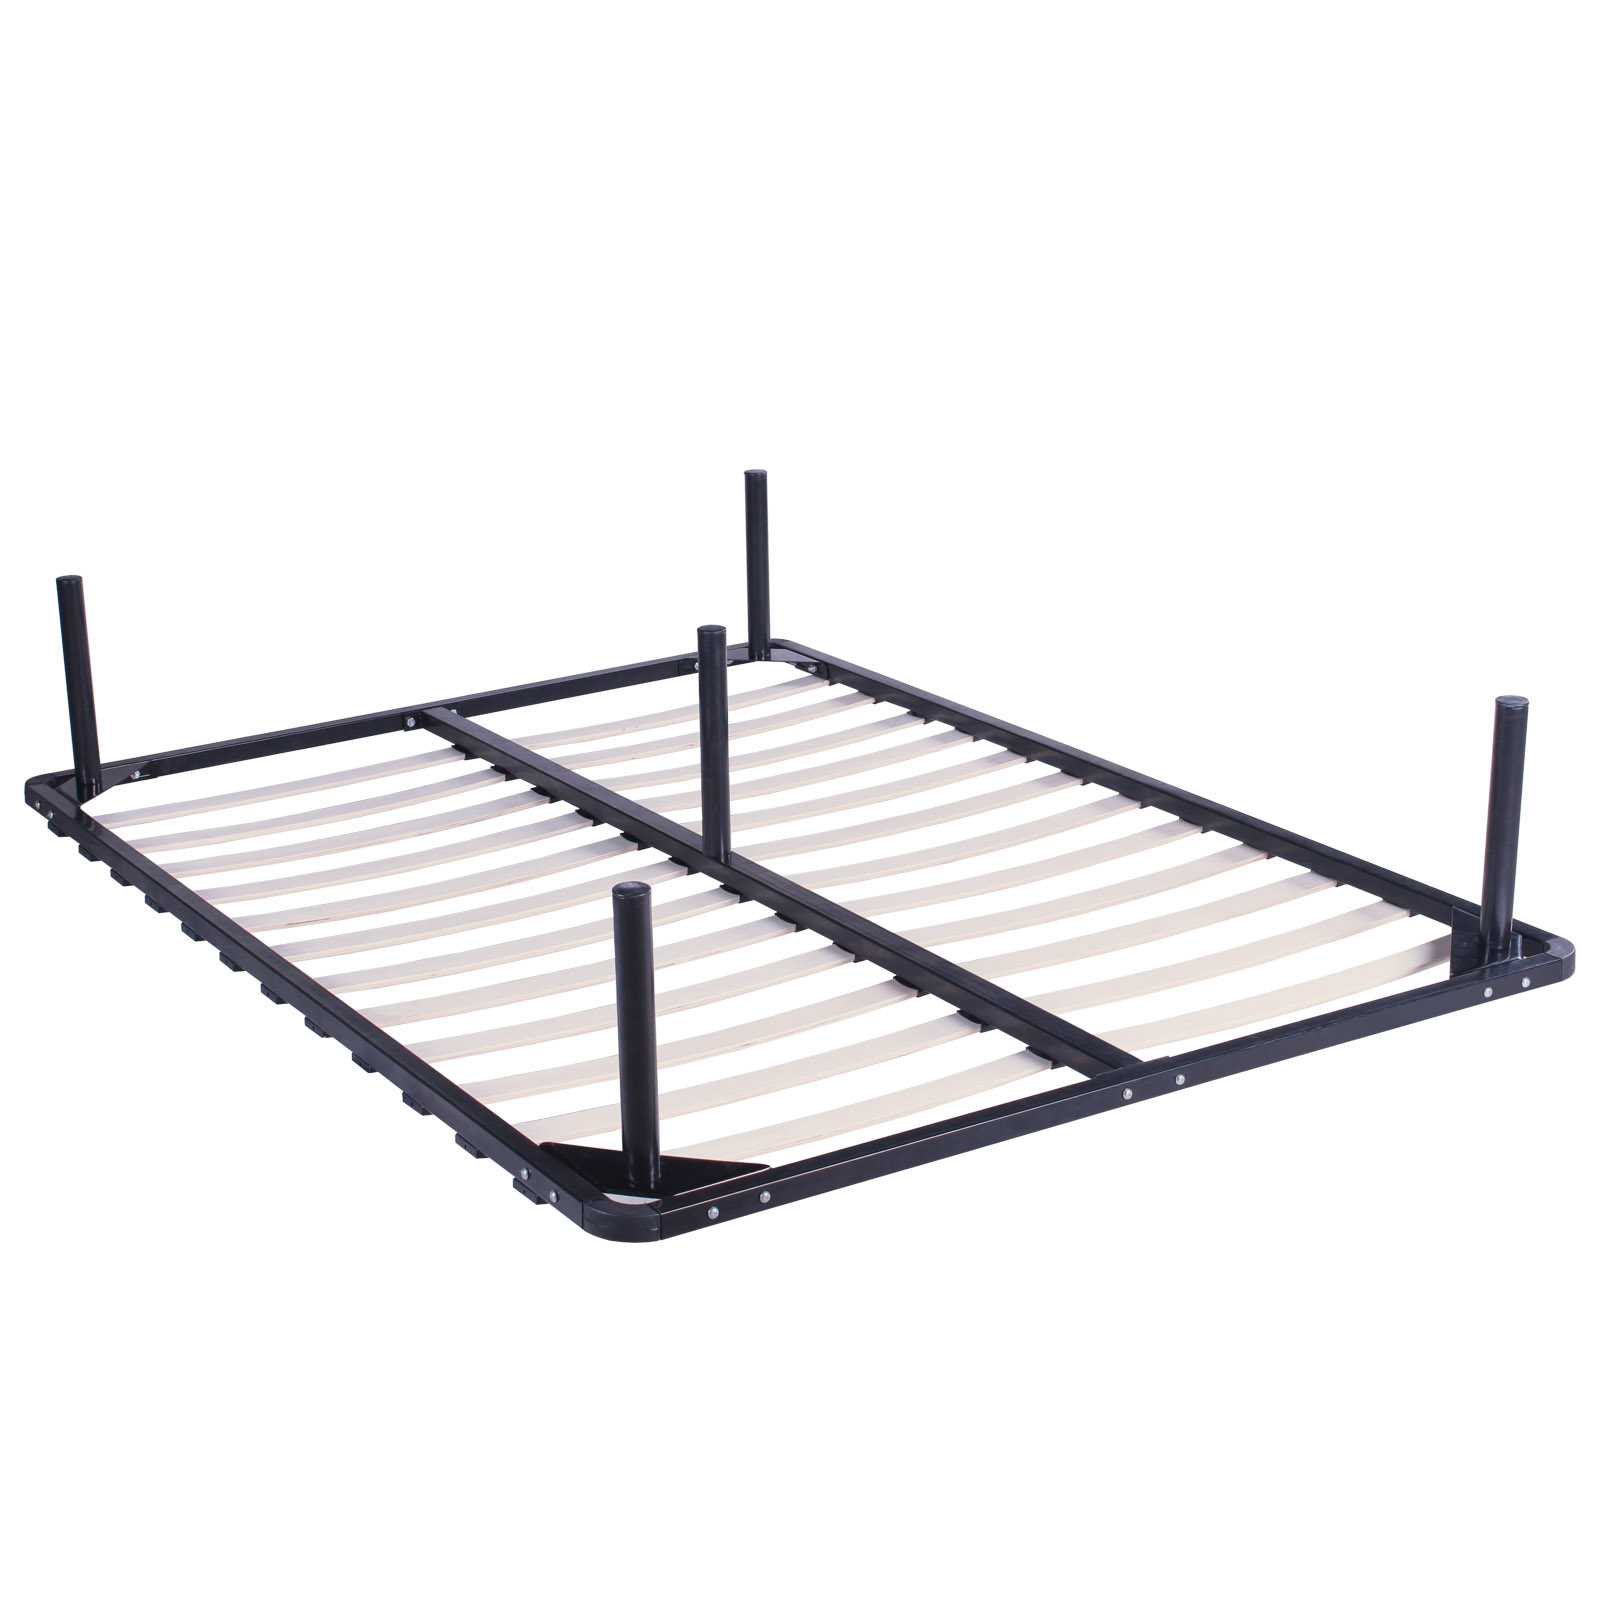 Aluminum Bed Frame With Slats